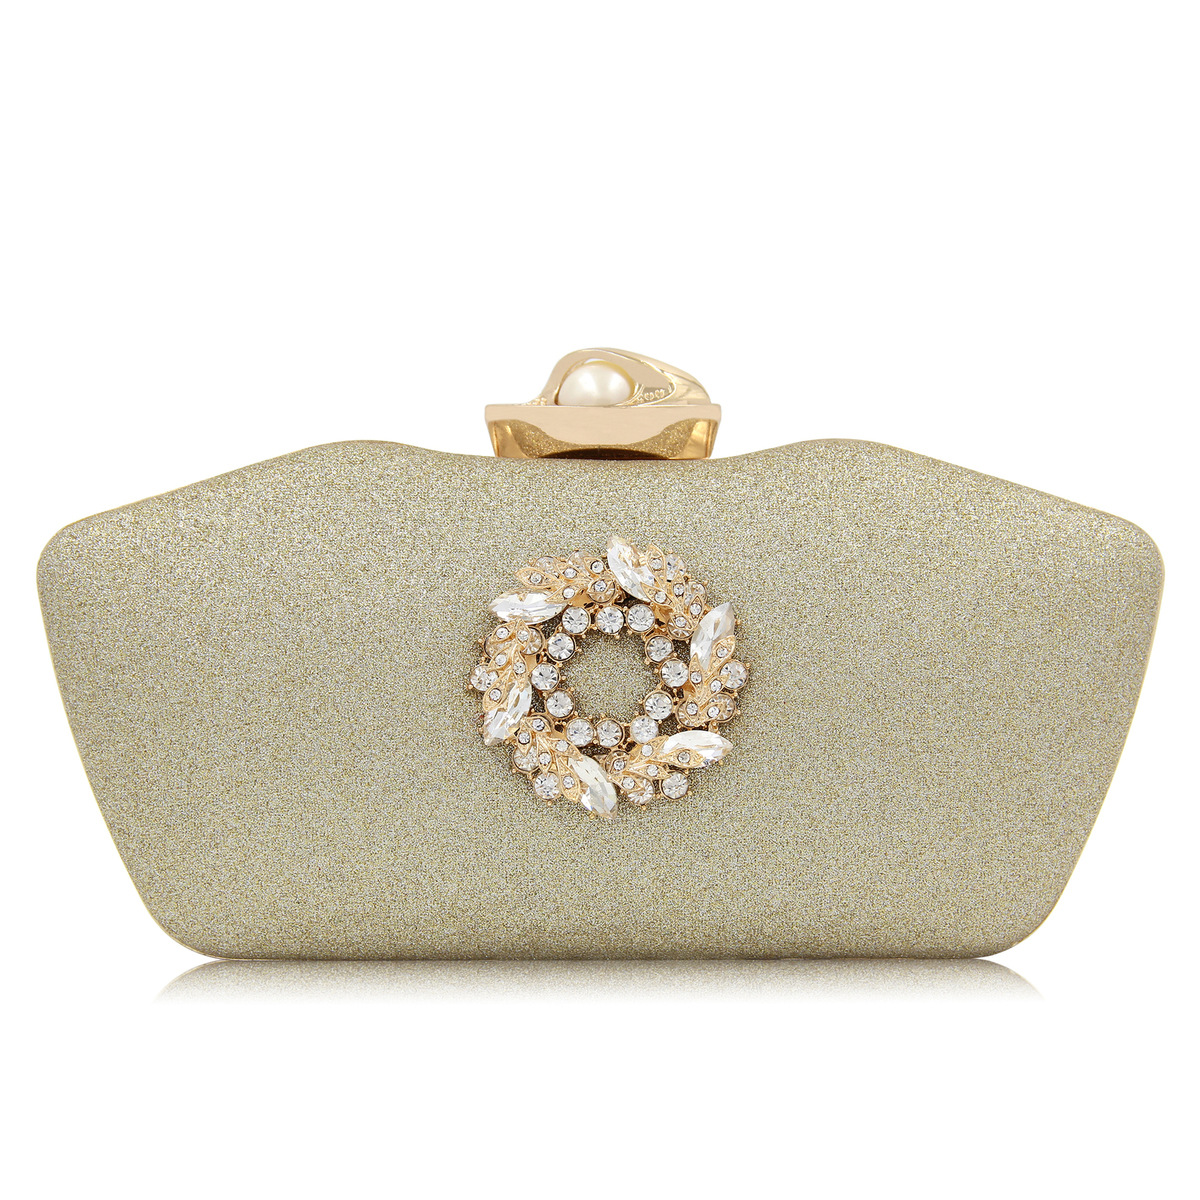 Clutches Women Diamond Flower Evening Clutch Bags Pearl Buckle Banquet Bag Ladies Day Party Clutches Purses Box Bolsa Feminina new women clutches crystal diamond buckle evening clutch bags ladies day clutches purses banquet bag